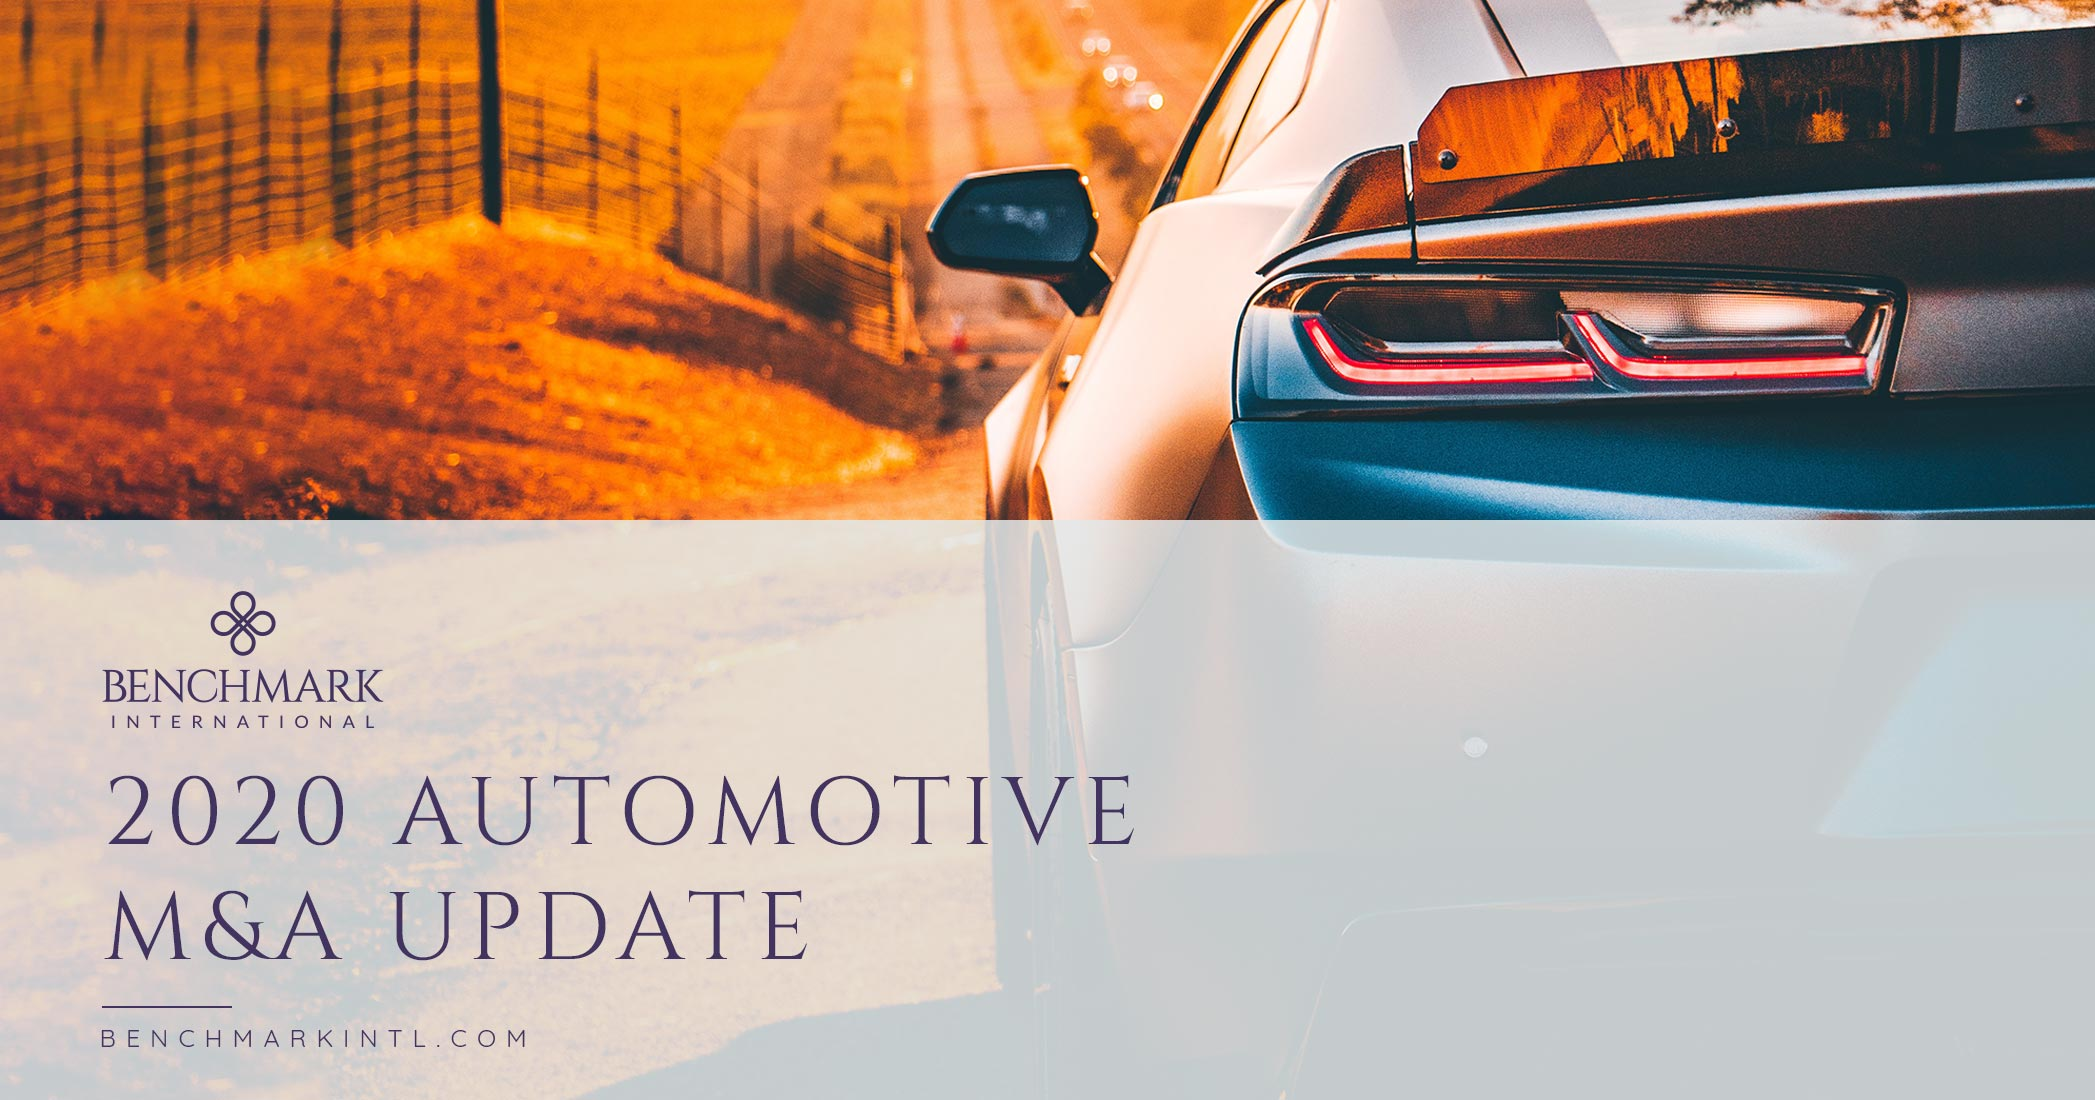 2020 Automotive M&A Update